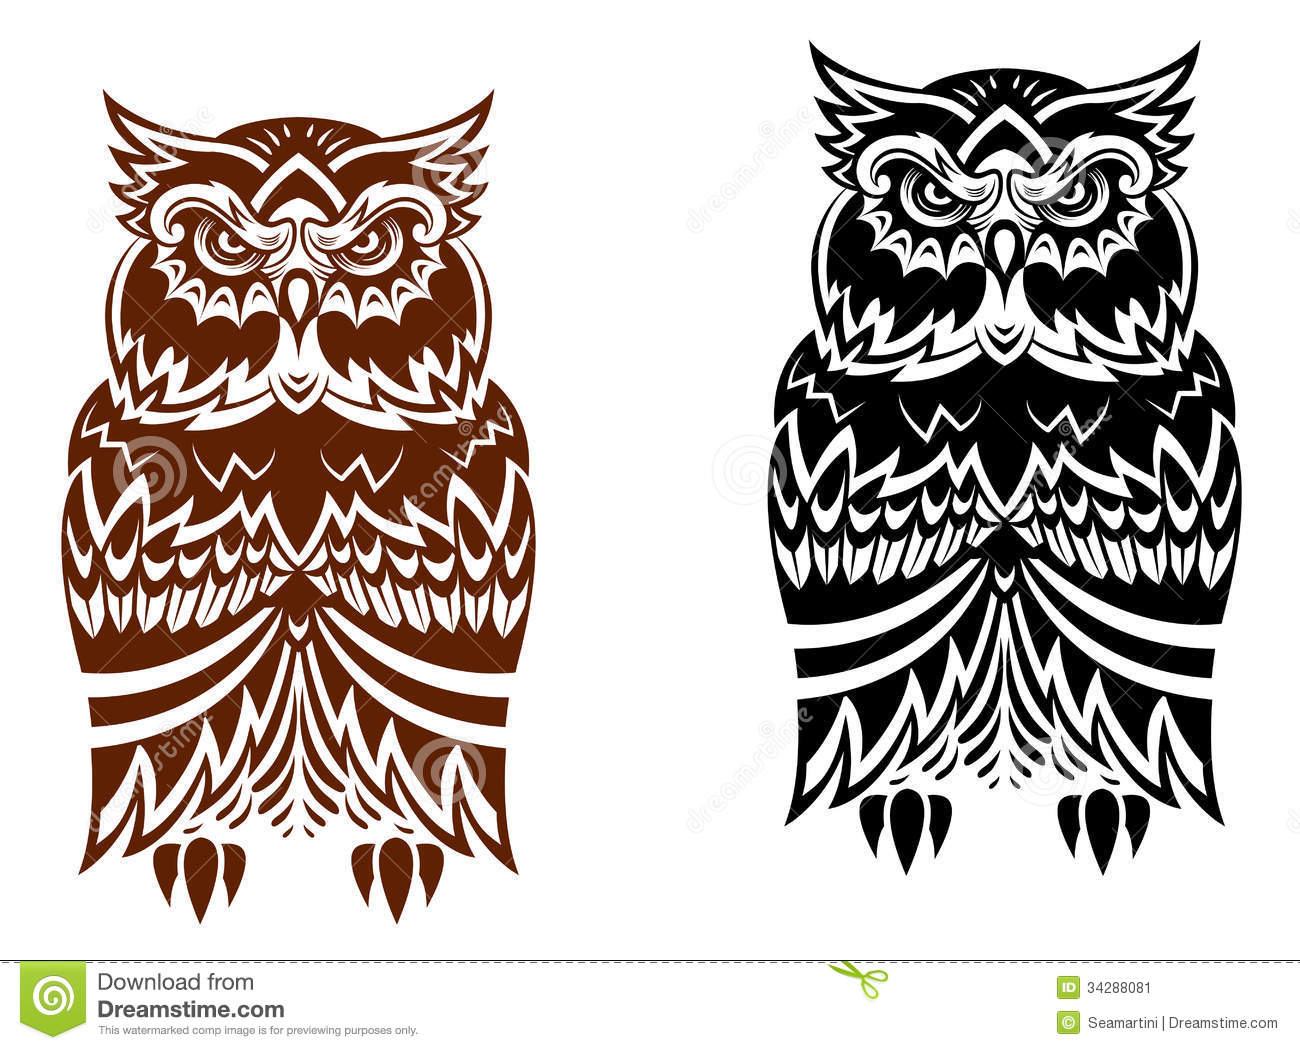 Tribal owl with decorative ornament isolated on white background.